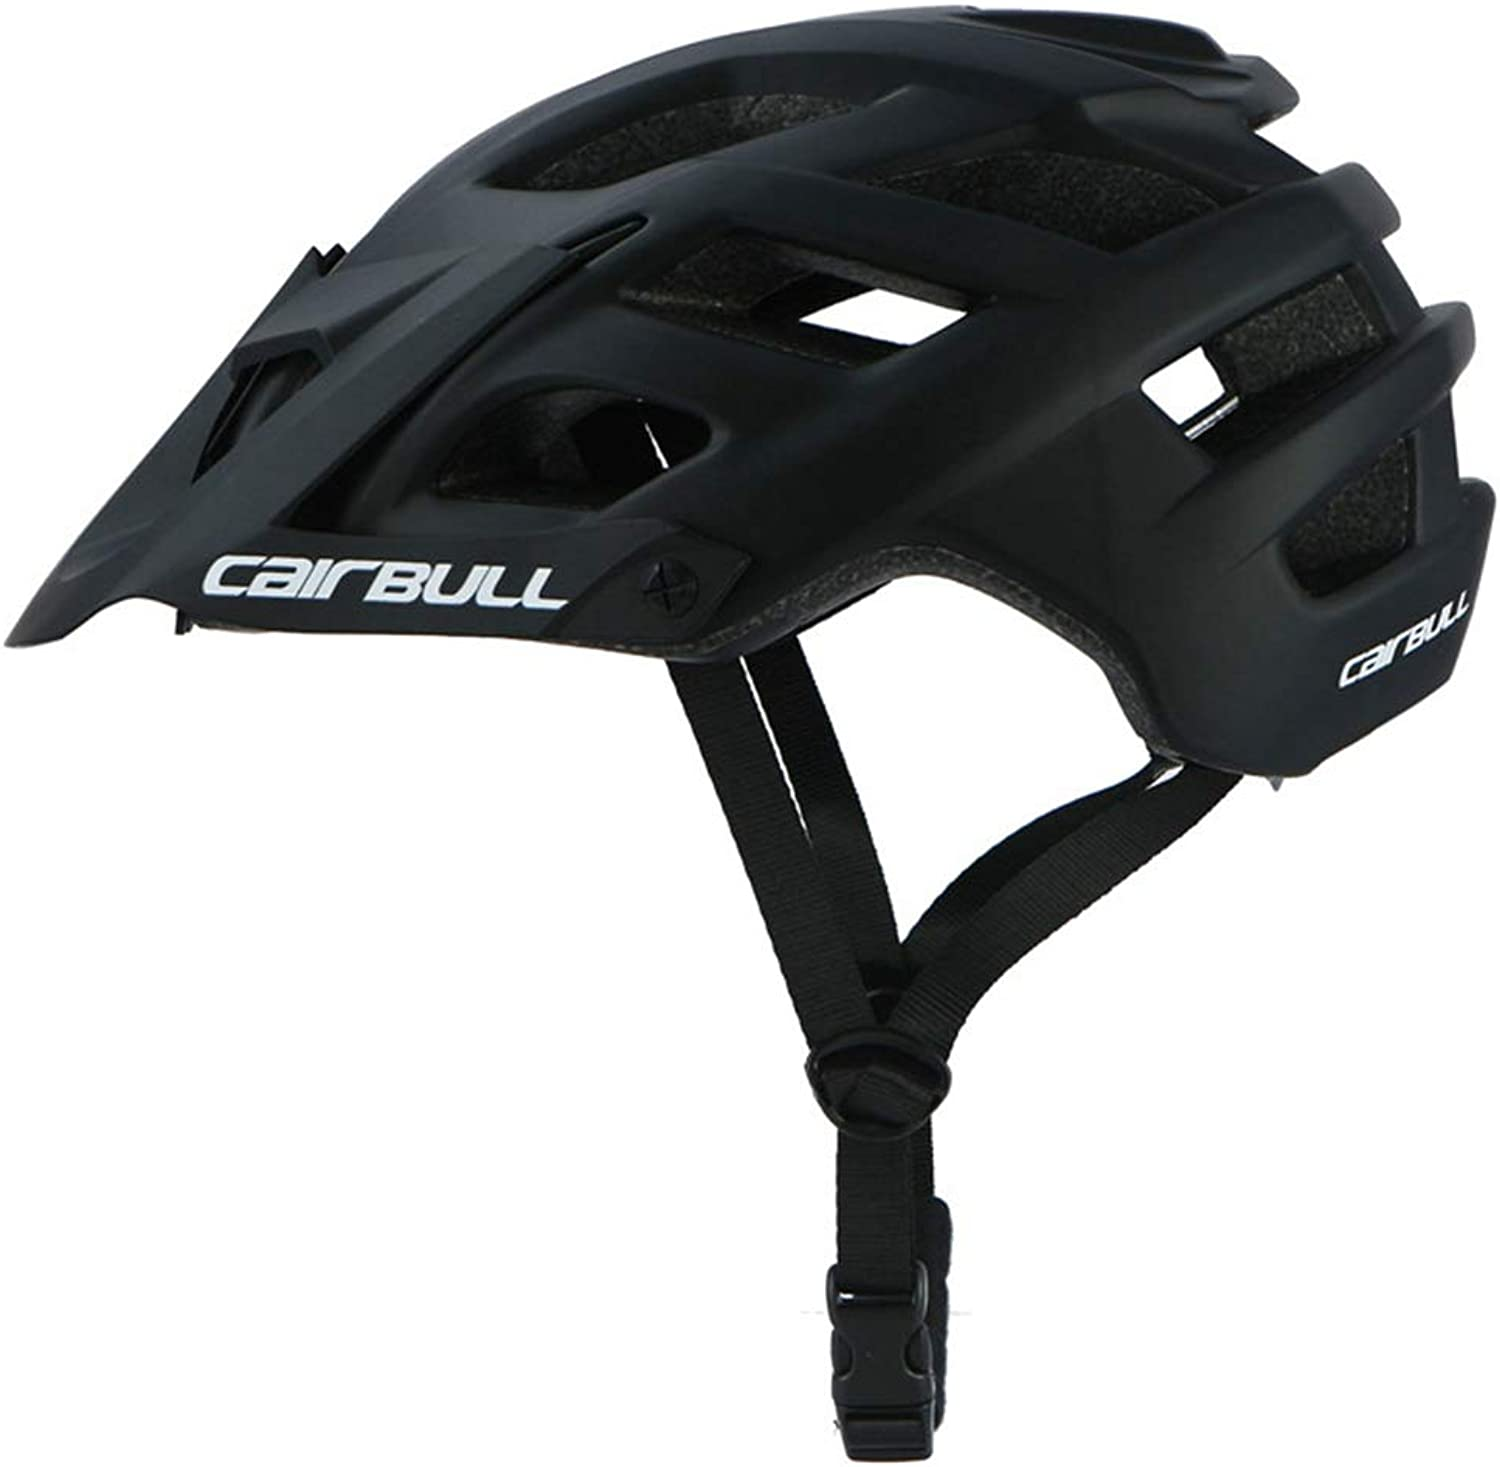 New Cairbull Cycling Helmet Trail XC Bicycle Helmet inMold MTB Bike Helmet Casco Ciclismo Road Mountain Helmets Safety Cap